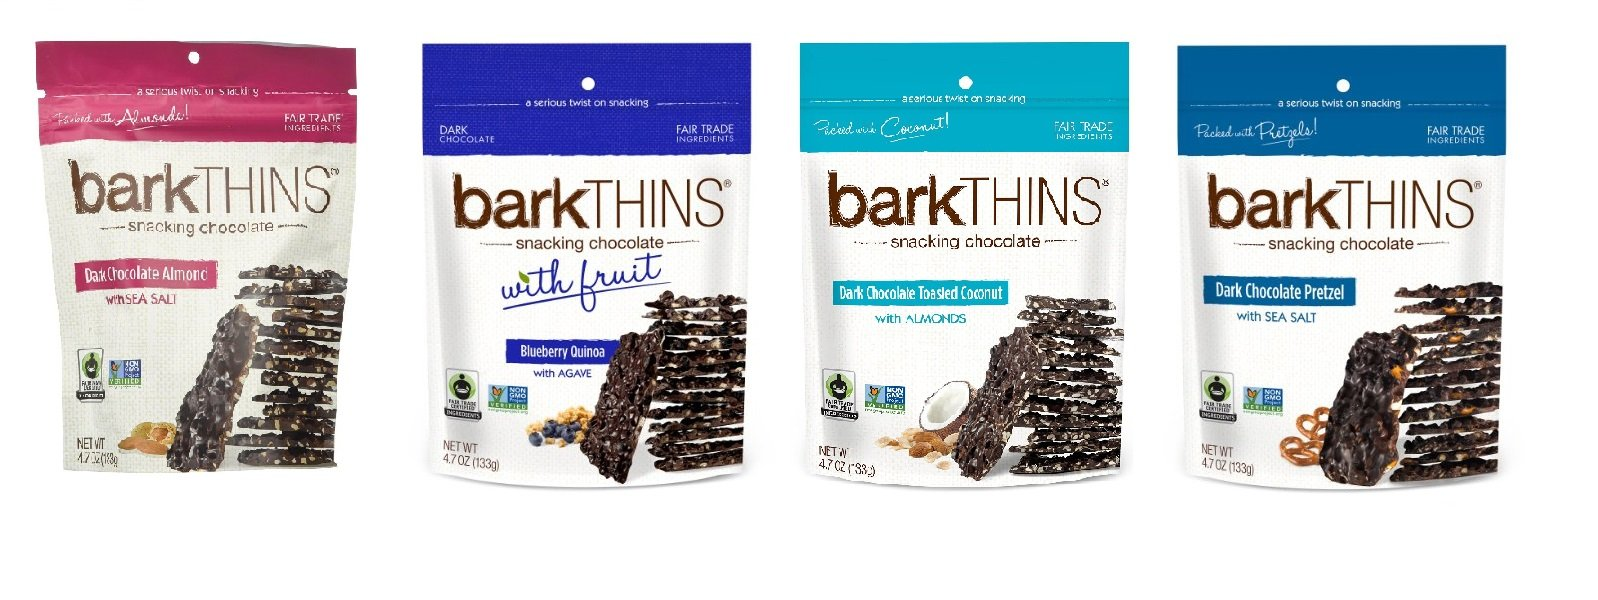 BarkTHINS Snacking Dark Chocolate Variety Pack, 1-Toasted Coconut Almonds, 1- Blueberry Quinoa, 1- Pretzel , 1- Almond, 4.7 Ounce each (Pack of 4)